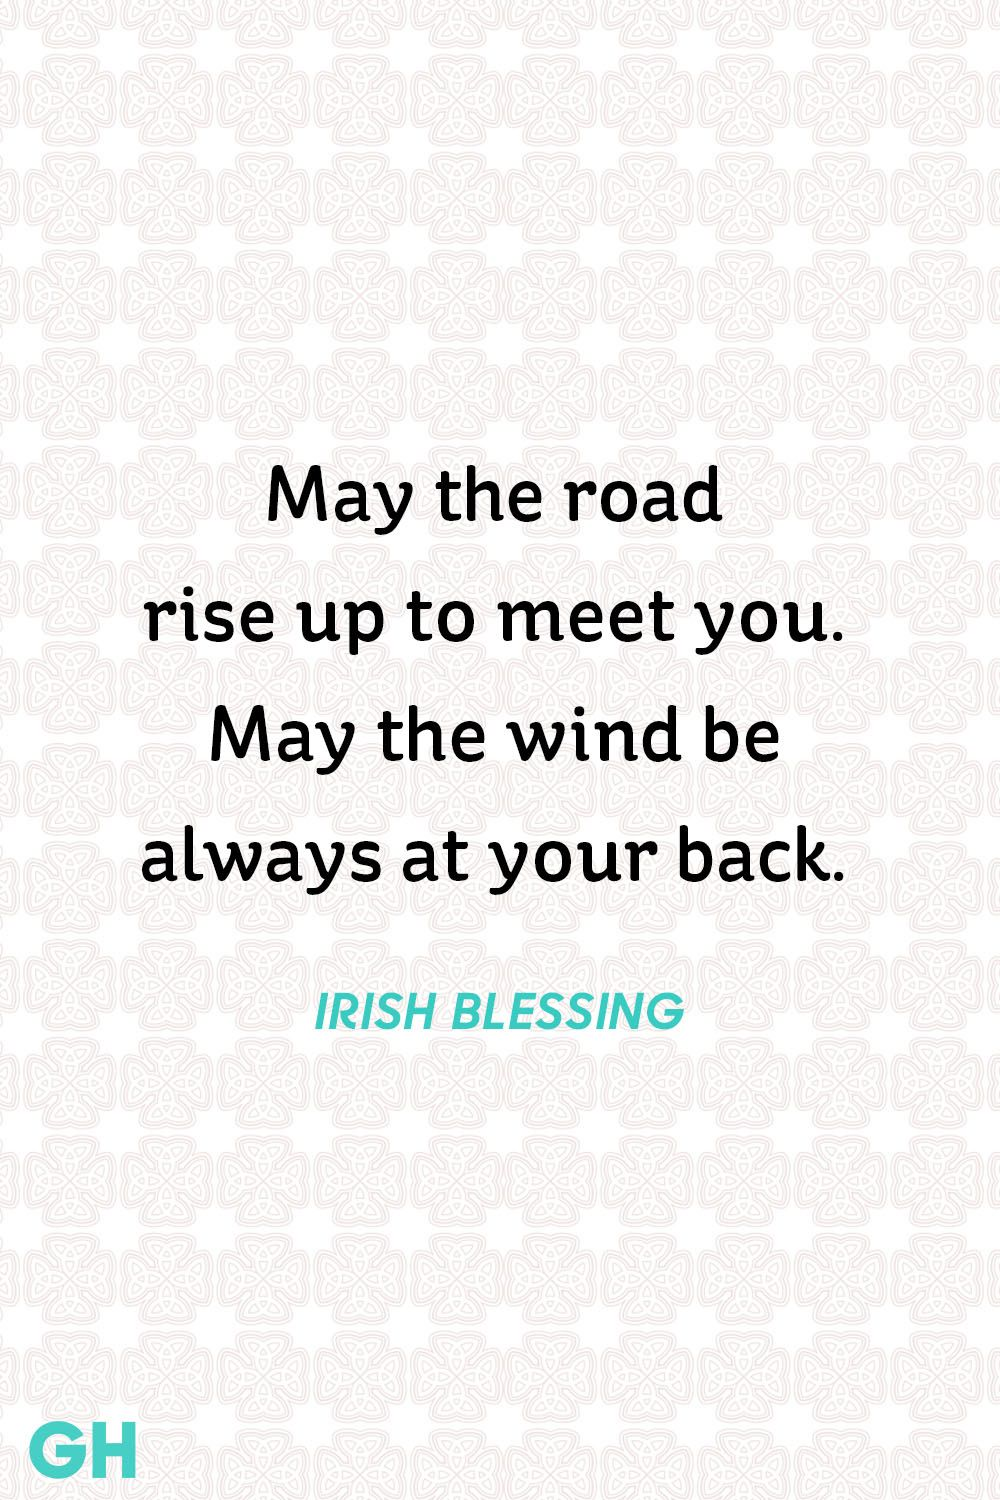 irish blessing st patrick's day quote